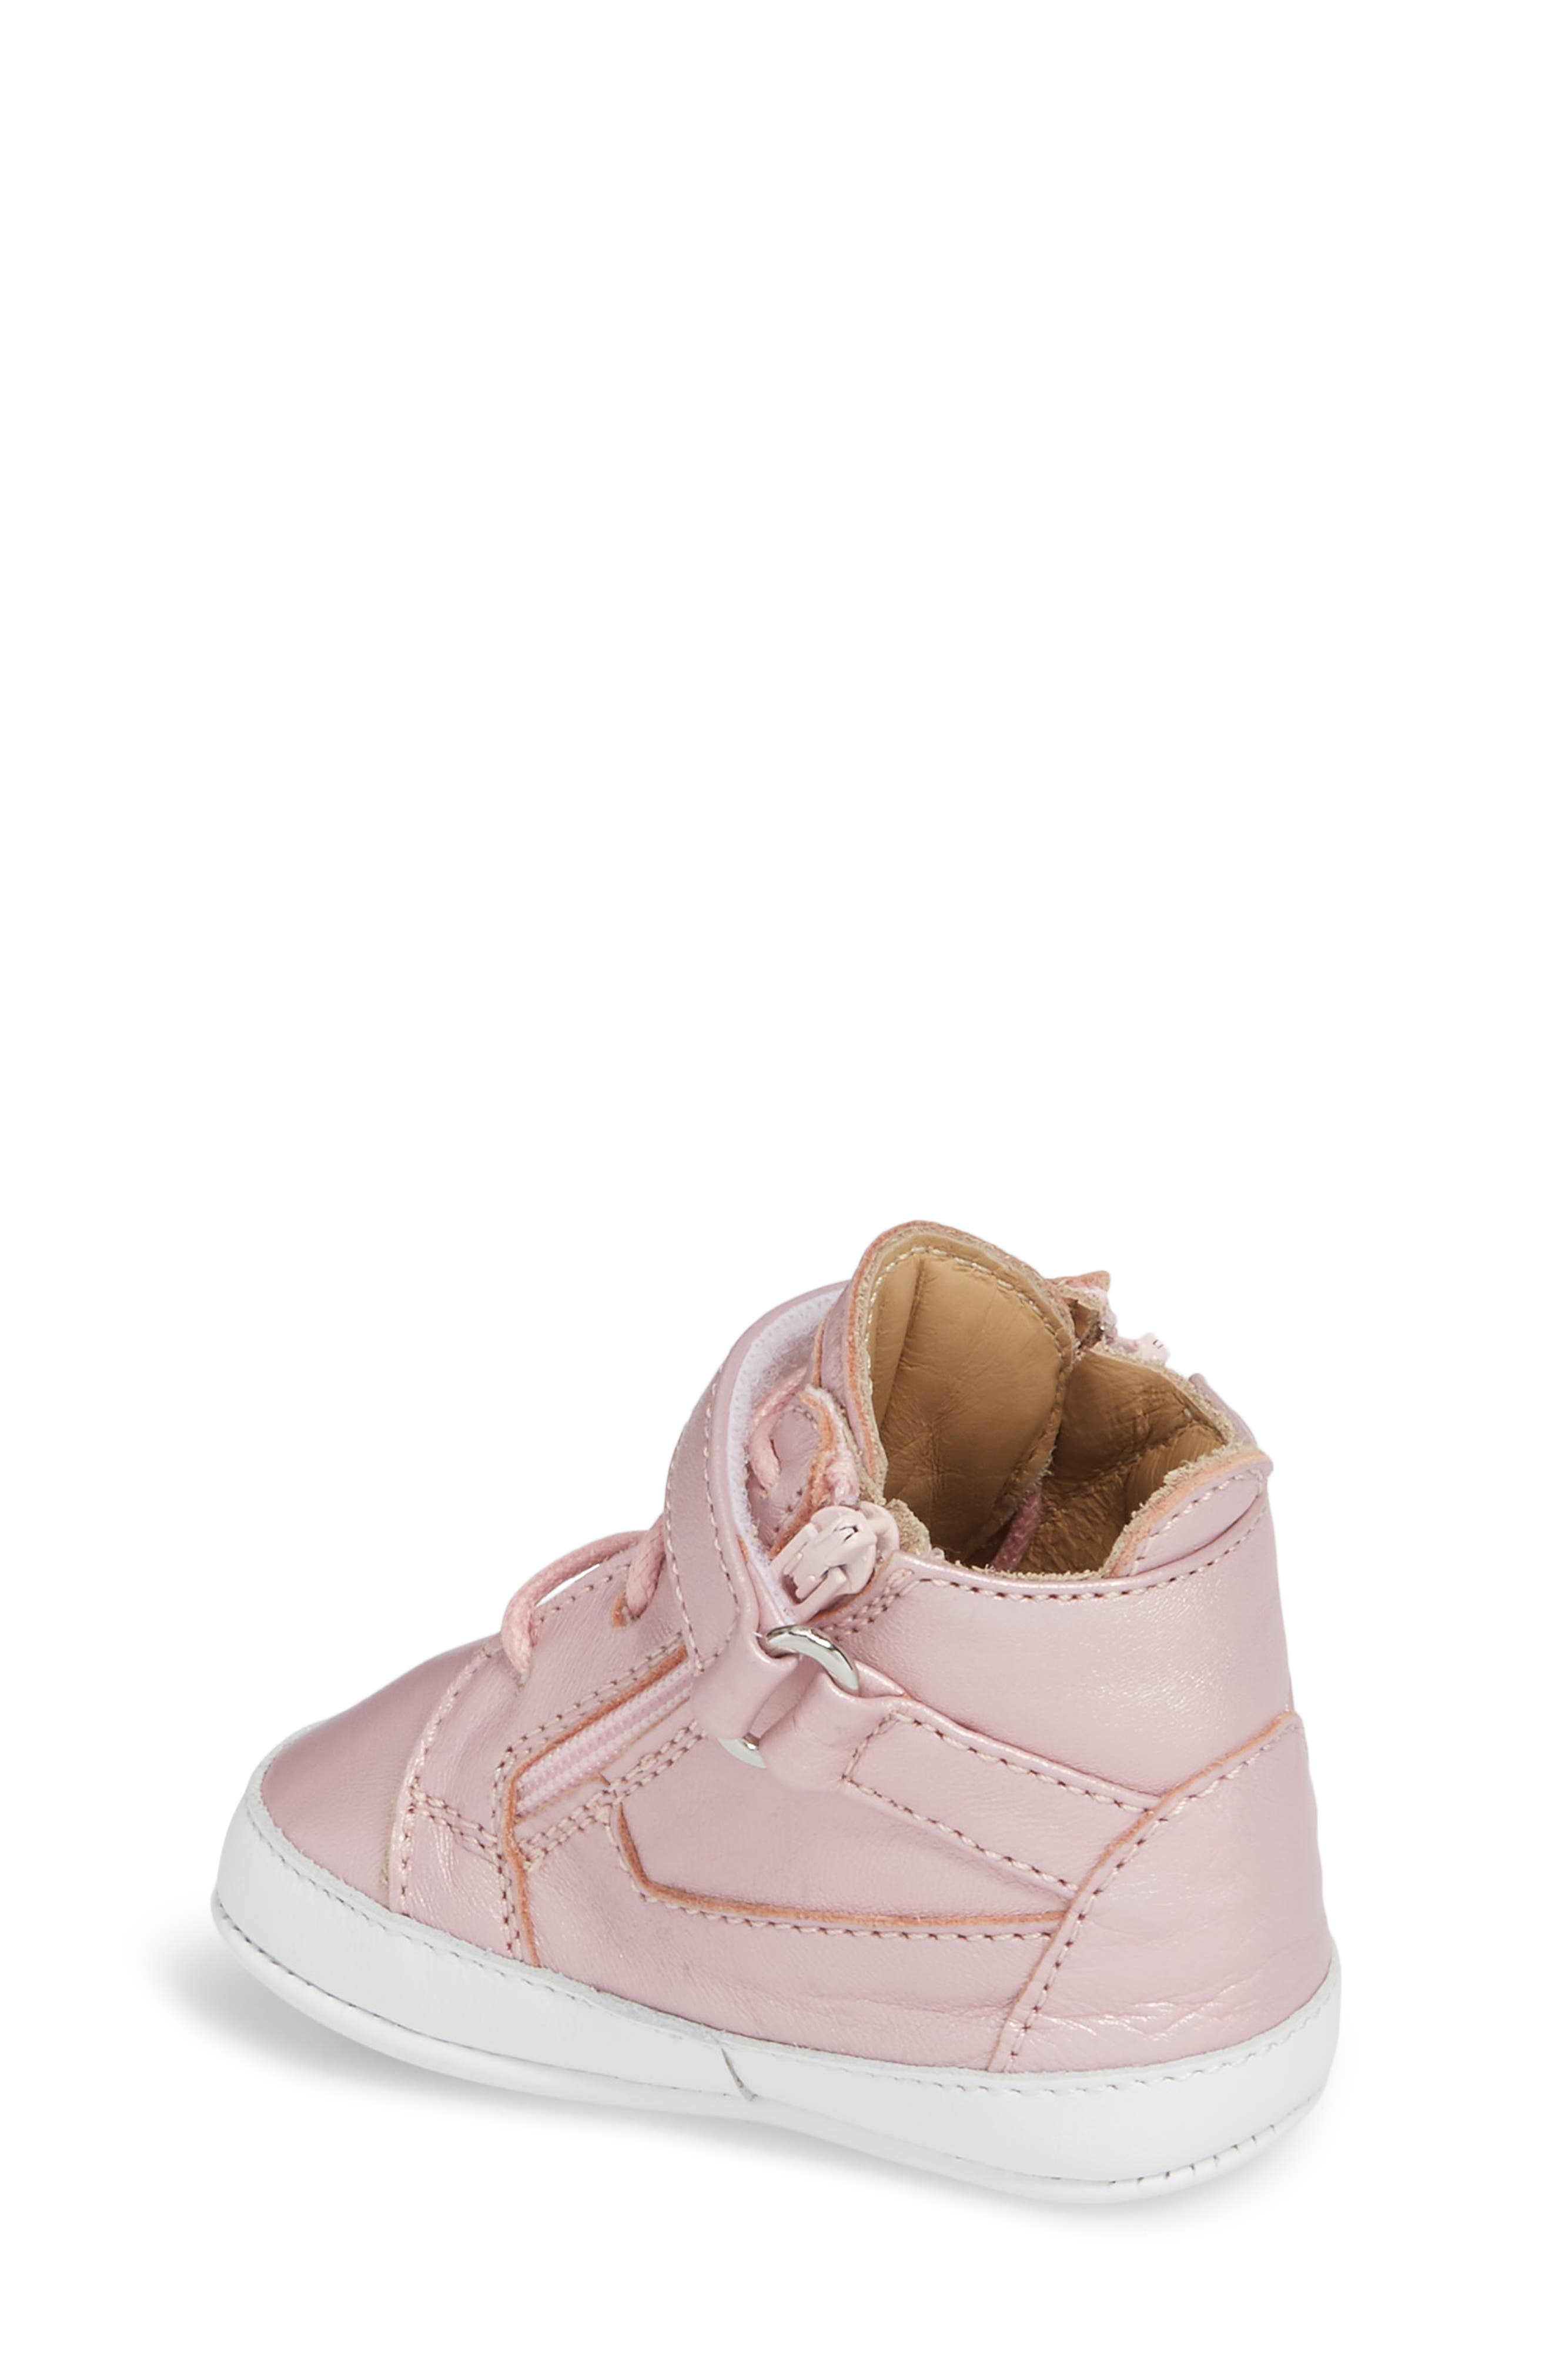 Culla London High Top Crib Sneaker,                             Alternate thumbnail 6, color,